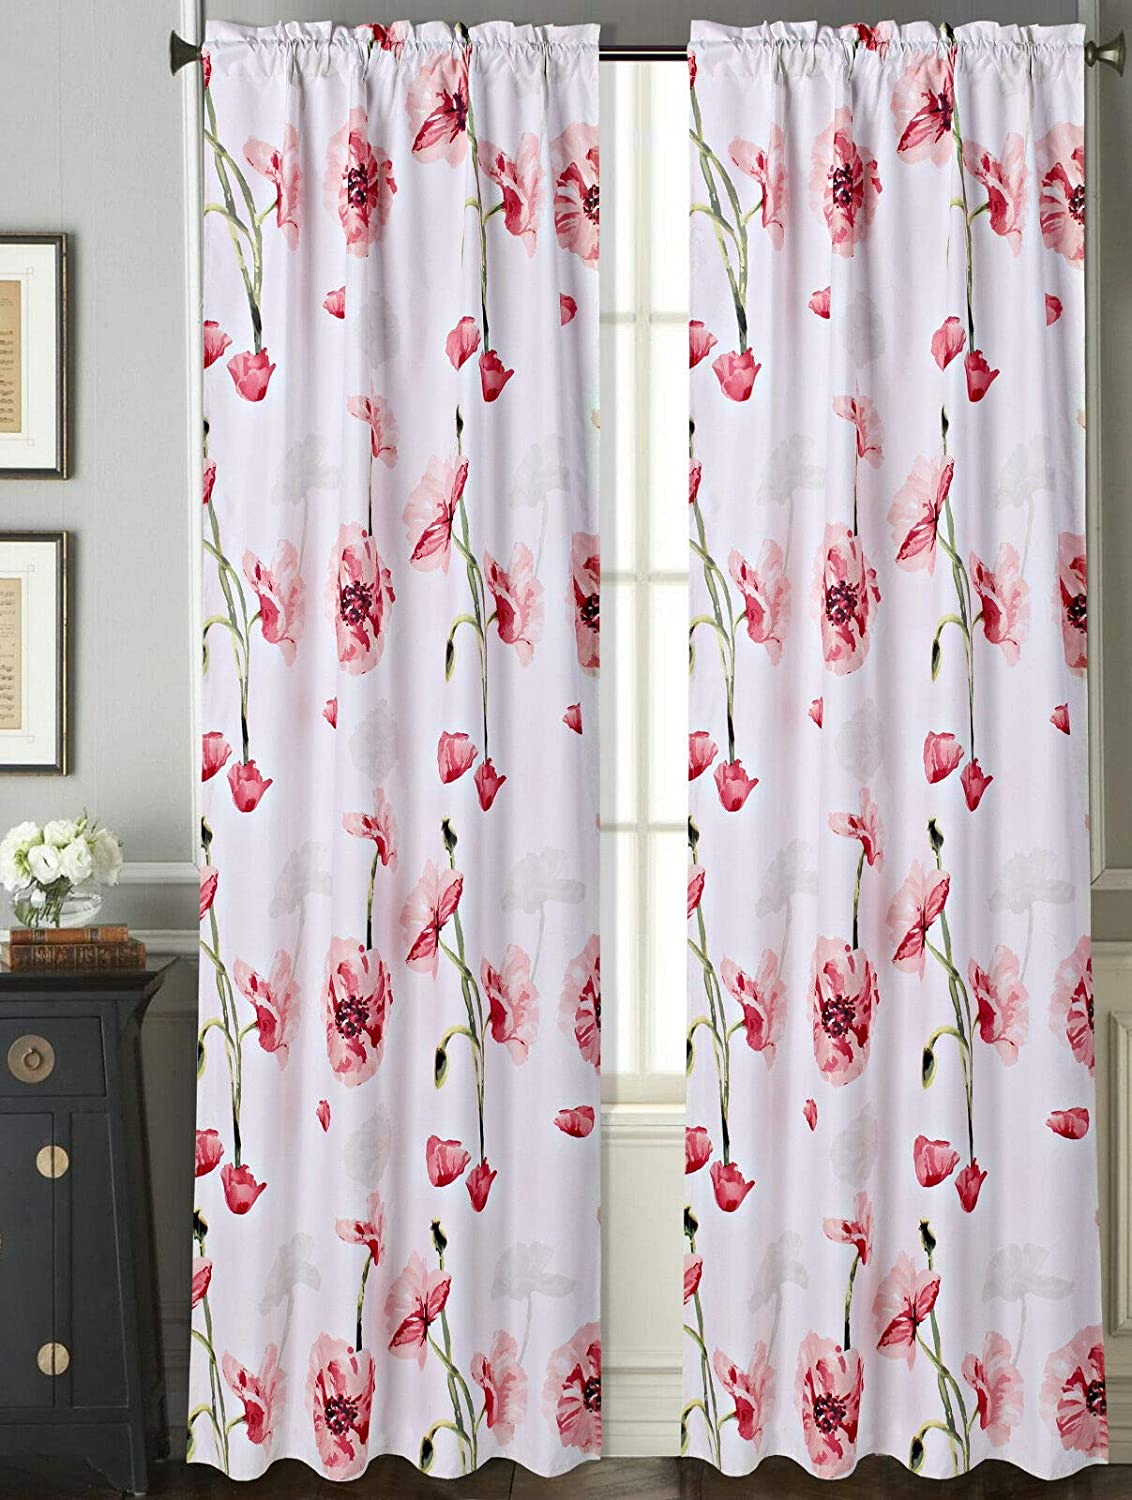 Decorative Floral Print DRP 63 Pink Sapphire Home 2 Rod Pocket Curtain Panels 63 Inches Long Light Filtering Room Darking Thermal Foam Back Lined Curtain Panels for Living//Bedroom//Patio Door